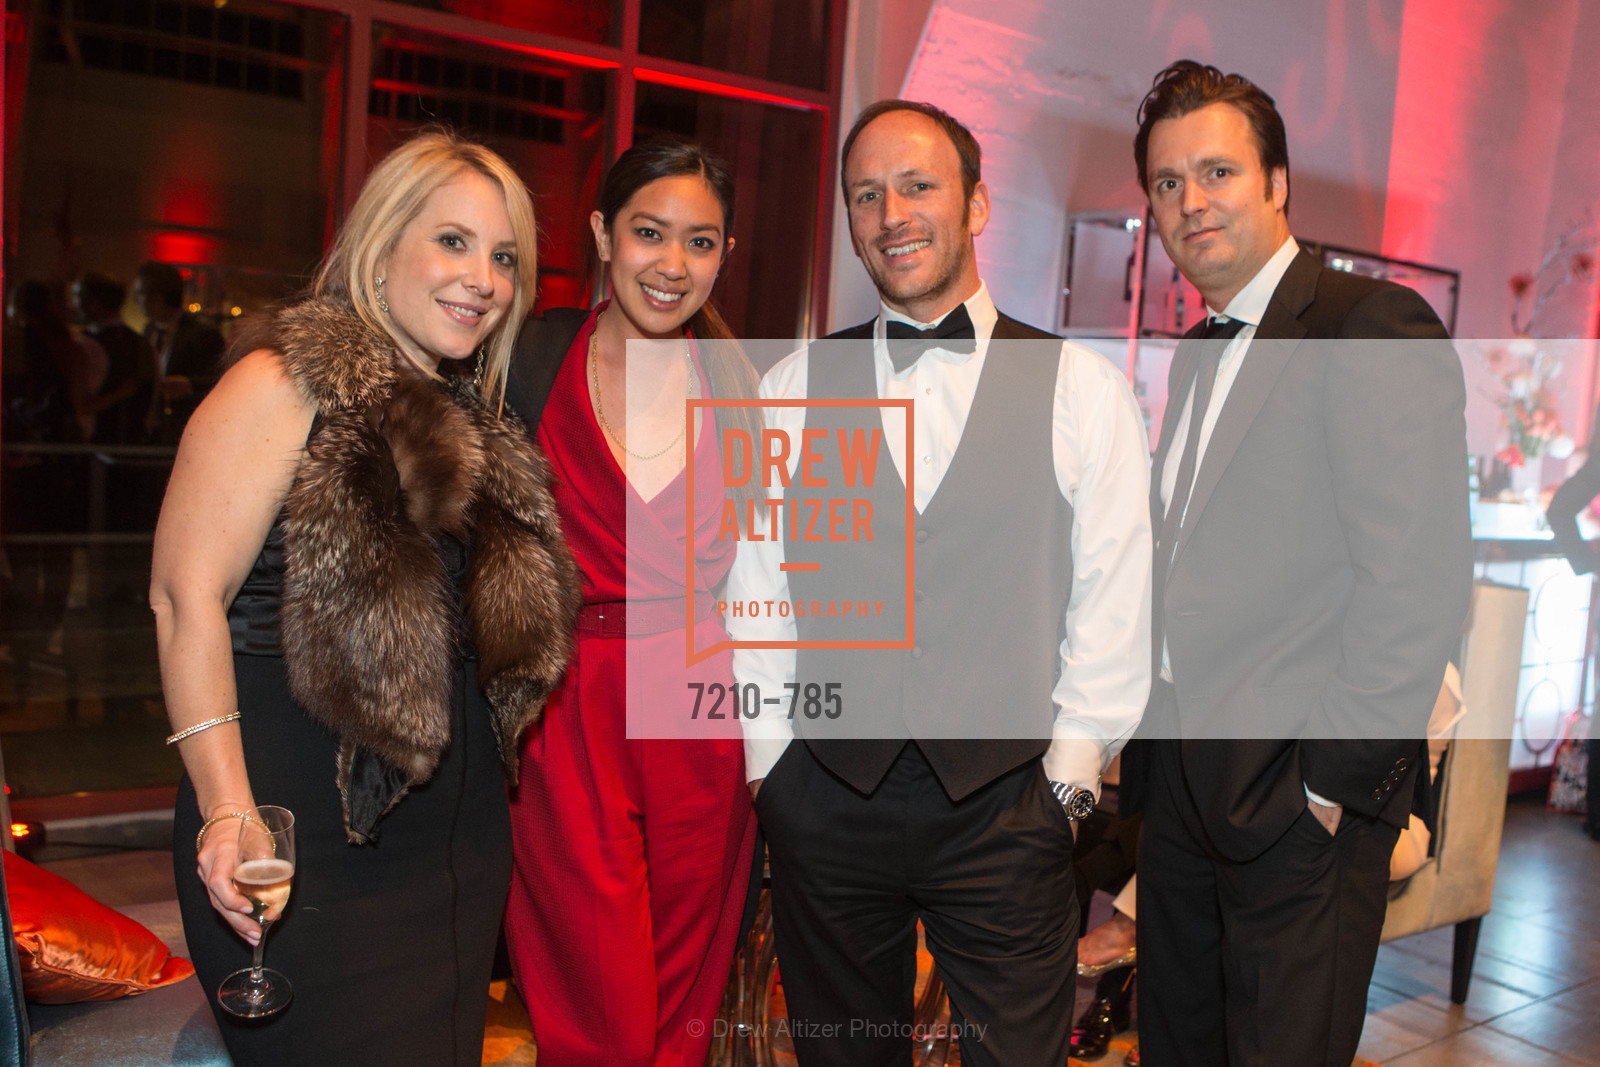 Autumn O'Keefe, Ginie Brown, Brian Brown, Harry Jumonville, 2015 RED CROSS Gala, US, April 11th, 2015,Drew Altizer, Drew Altizer Photography, full-service agency, private events, San Francisco photographer, photographer california